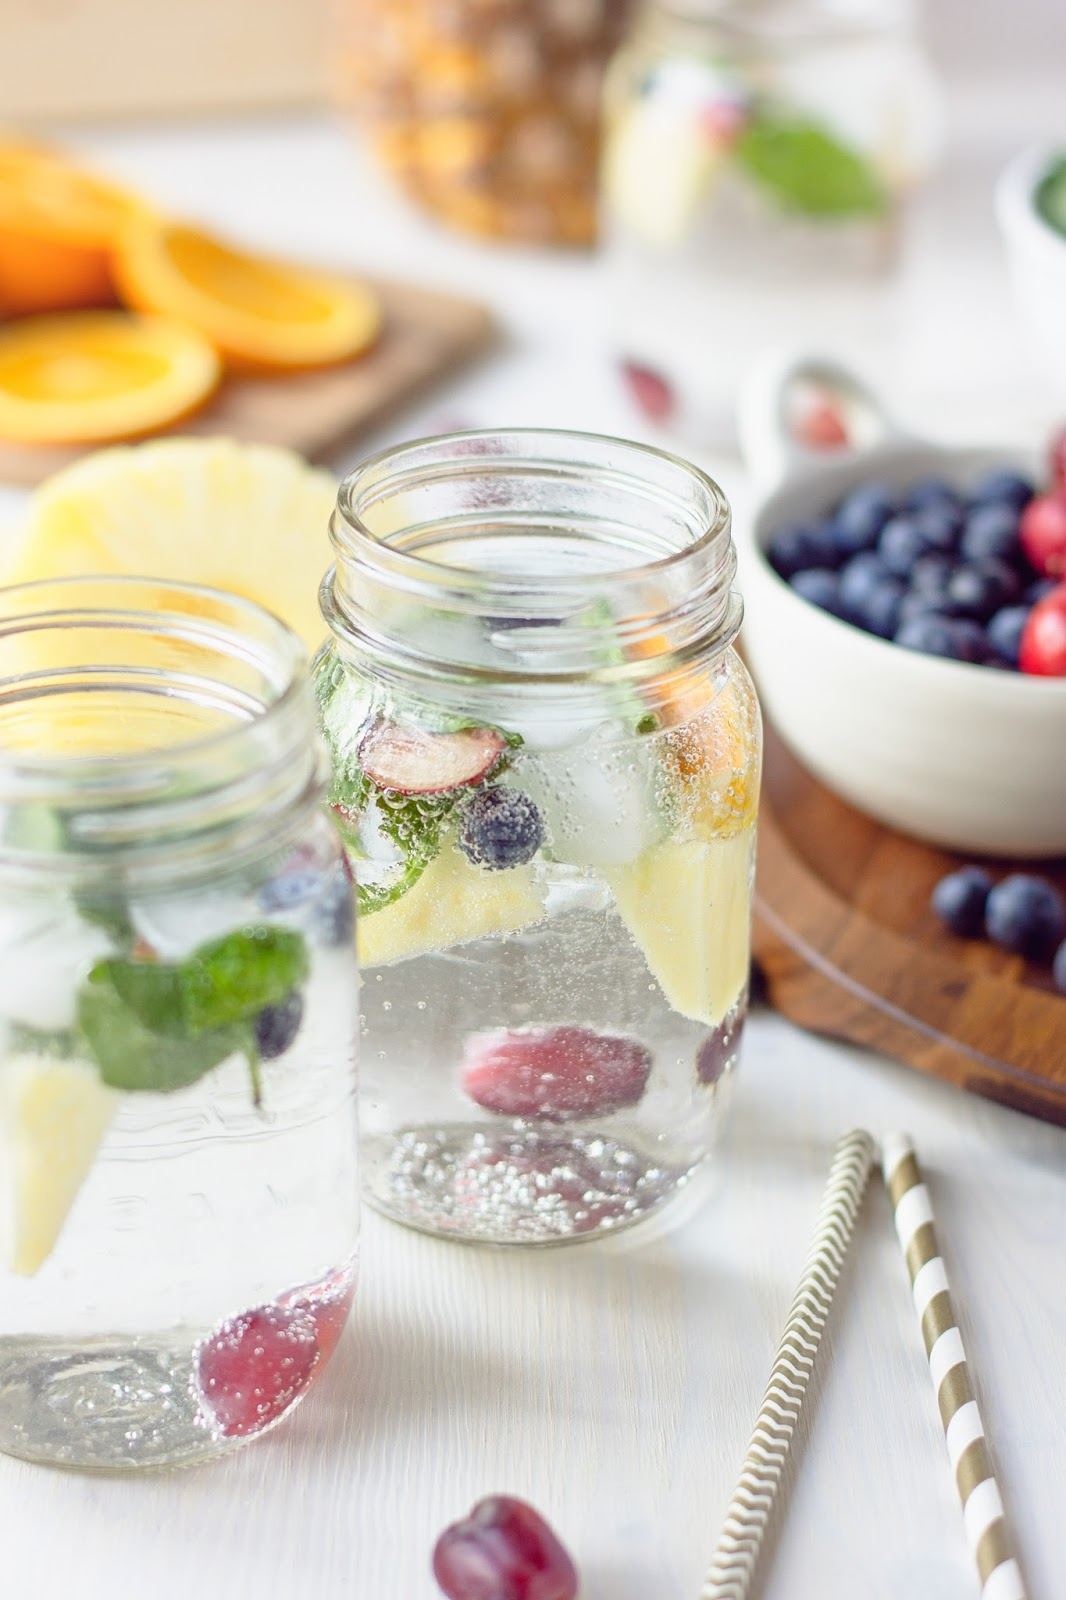 Infuse-SodaStream-Water-Fruit